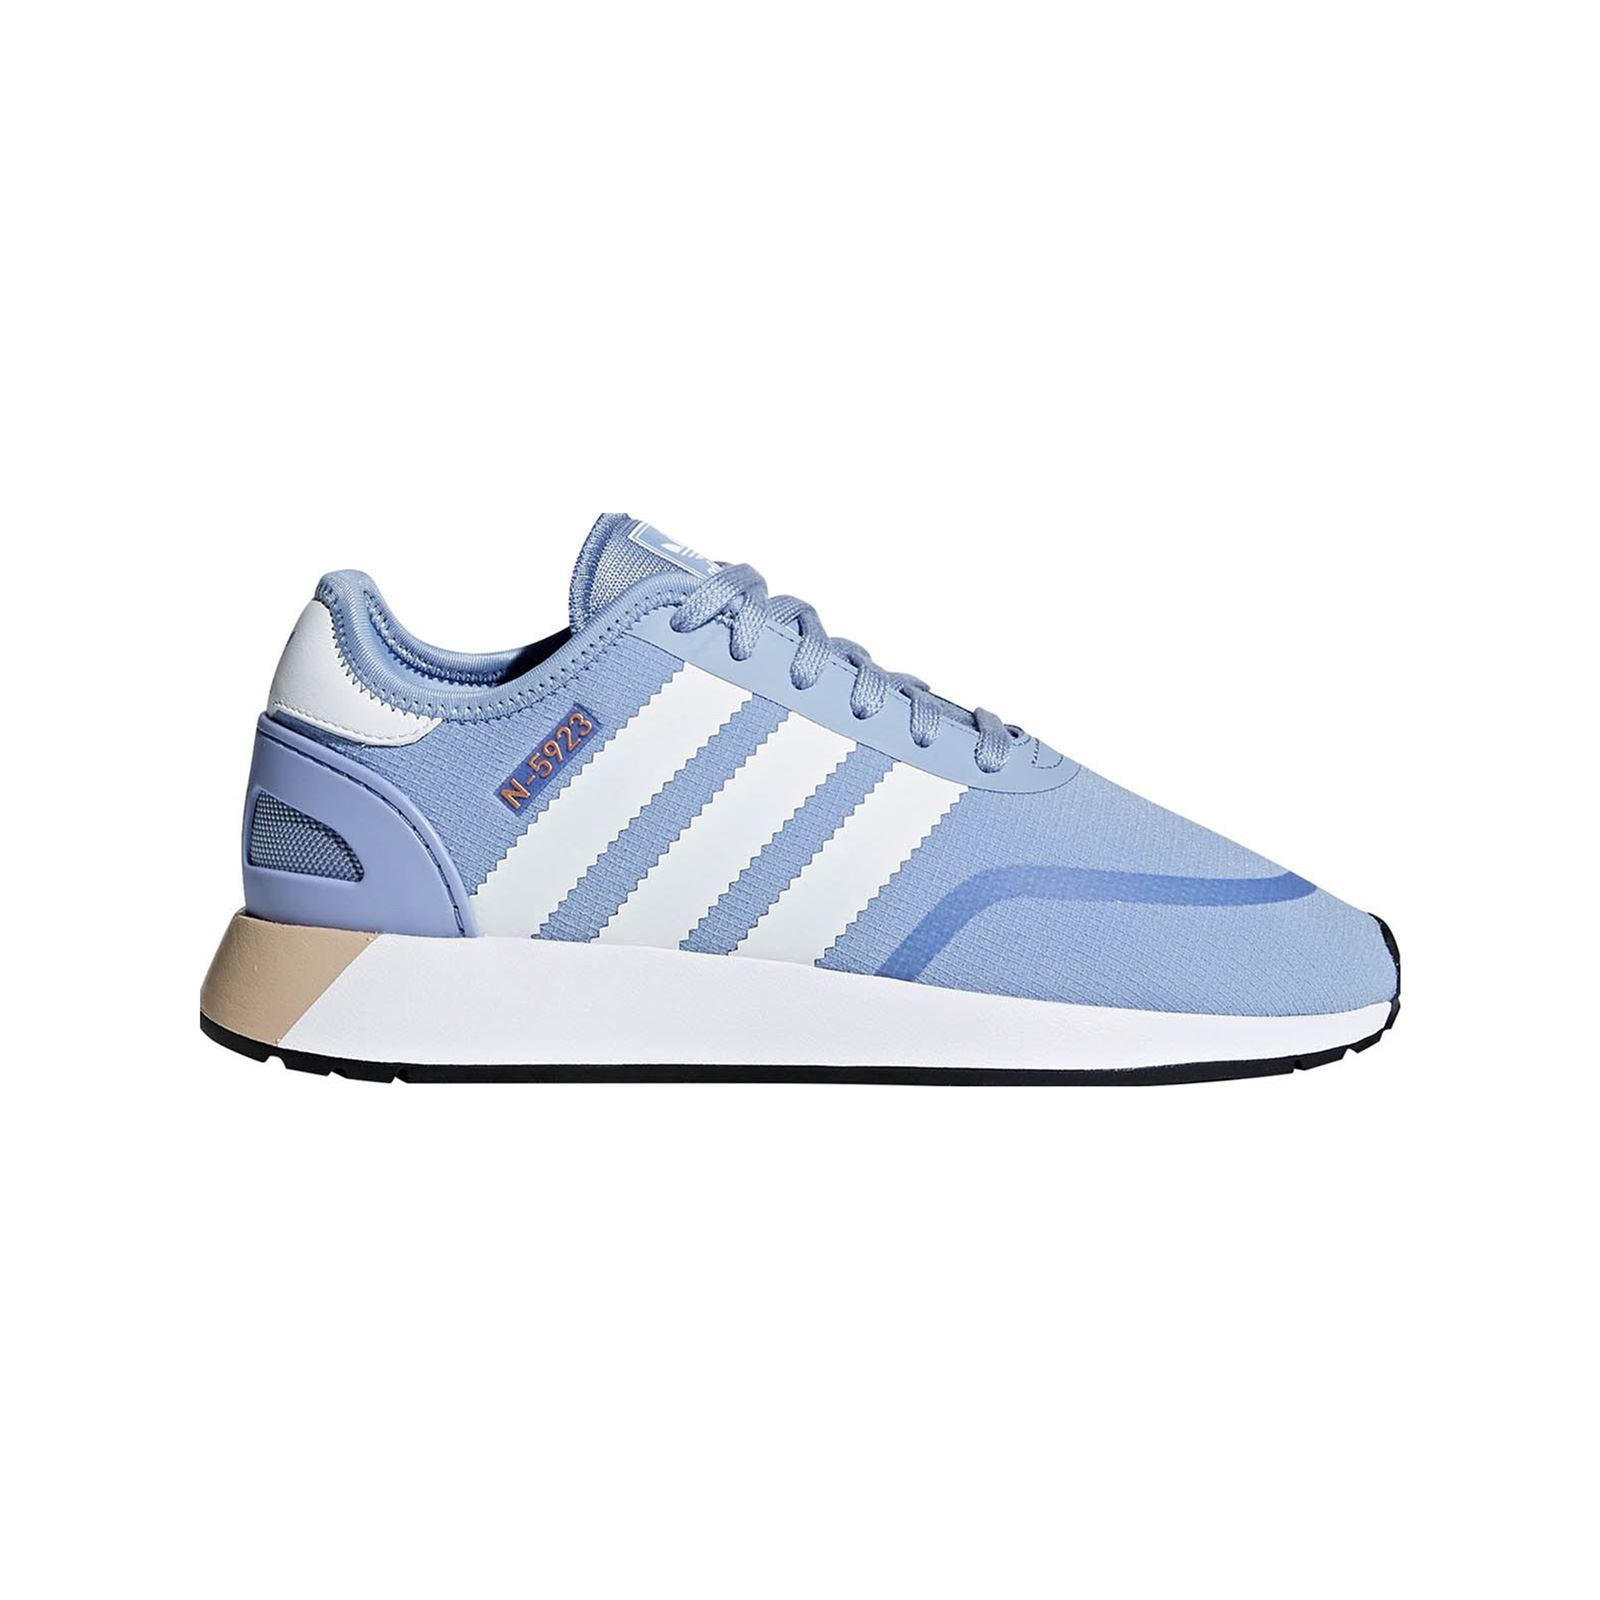 Adidas Originals N 5923 W - Sneakers - bleu  Empiècement siglé au dos - application siglée par endroit